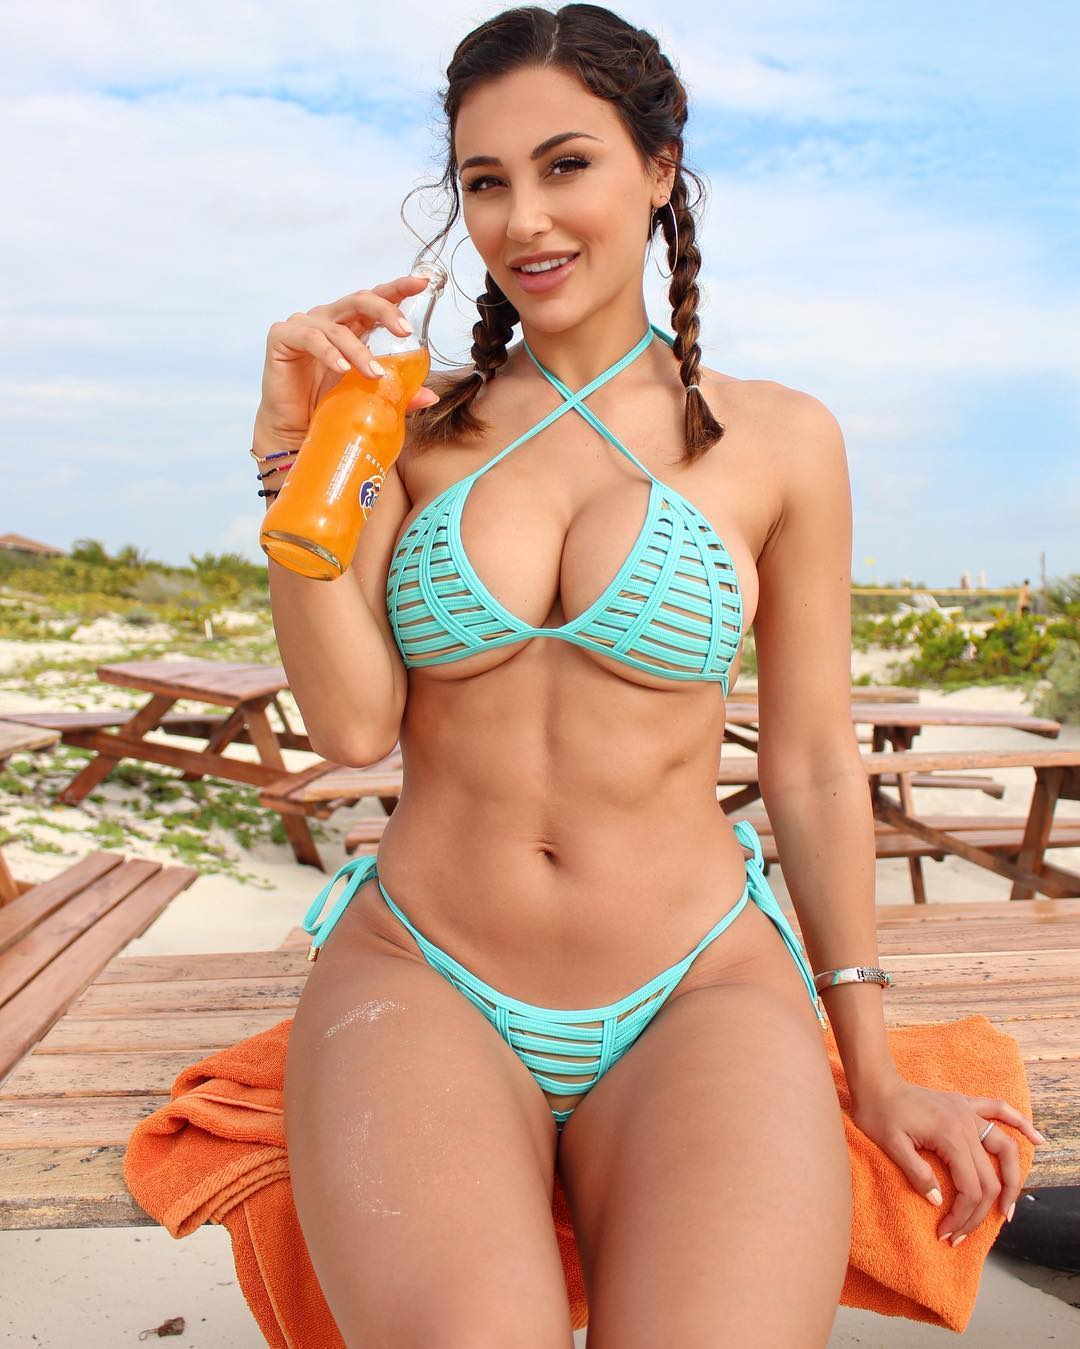 Ana Cheri Hot Bikini Outdoors - Ana Cheri Hot Bikini Outdoors